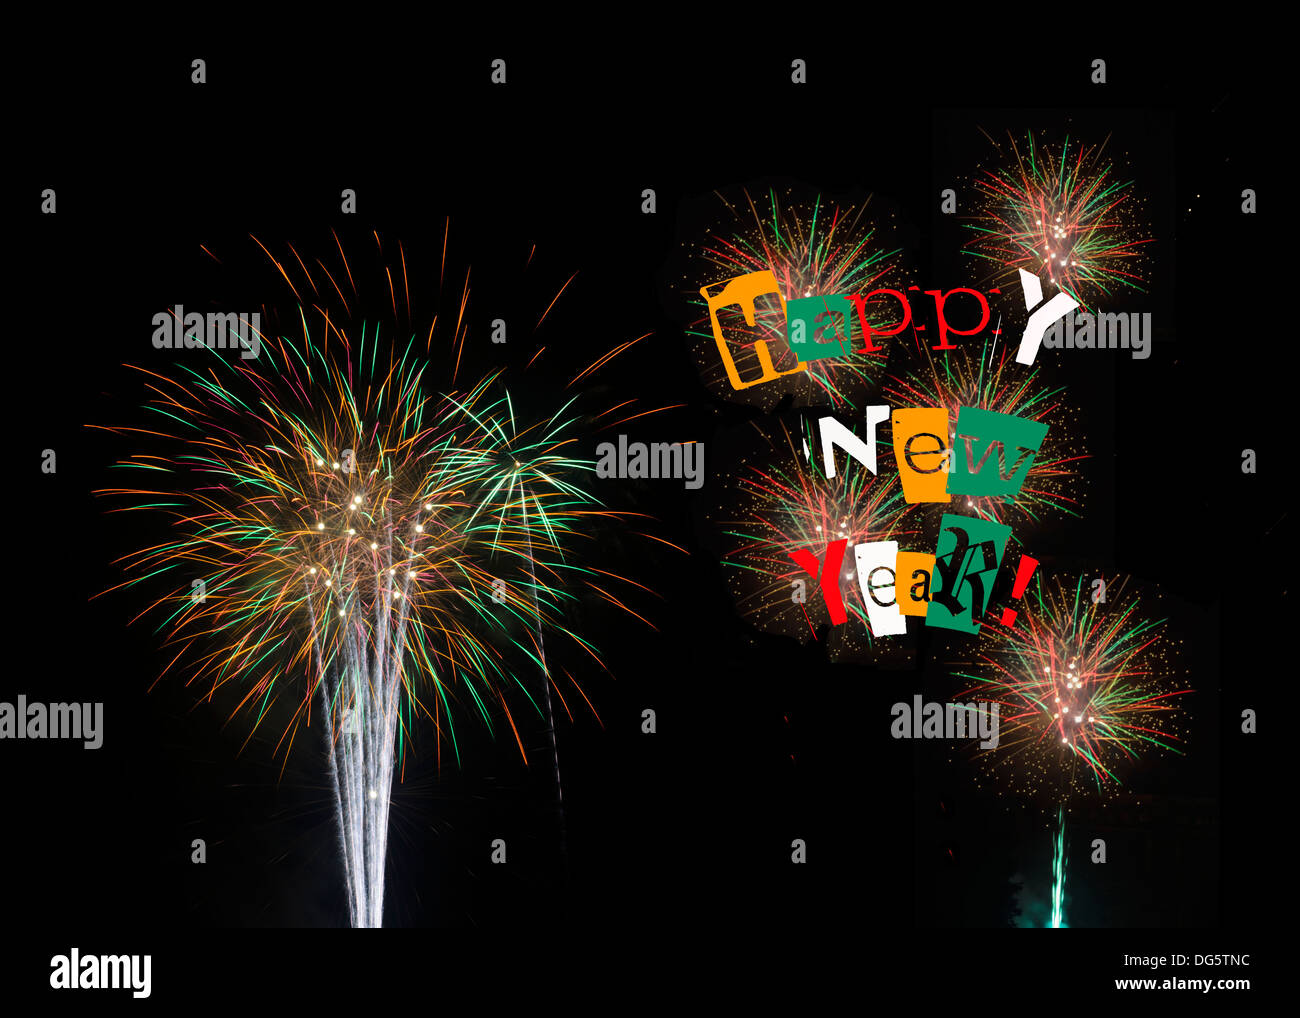 Happy New Year 2014 colorful colourful fireworks on black background. Also with 2014 see DG5TNK and Feliz Año Nuevo DG5TNA - Stock Image